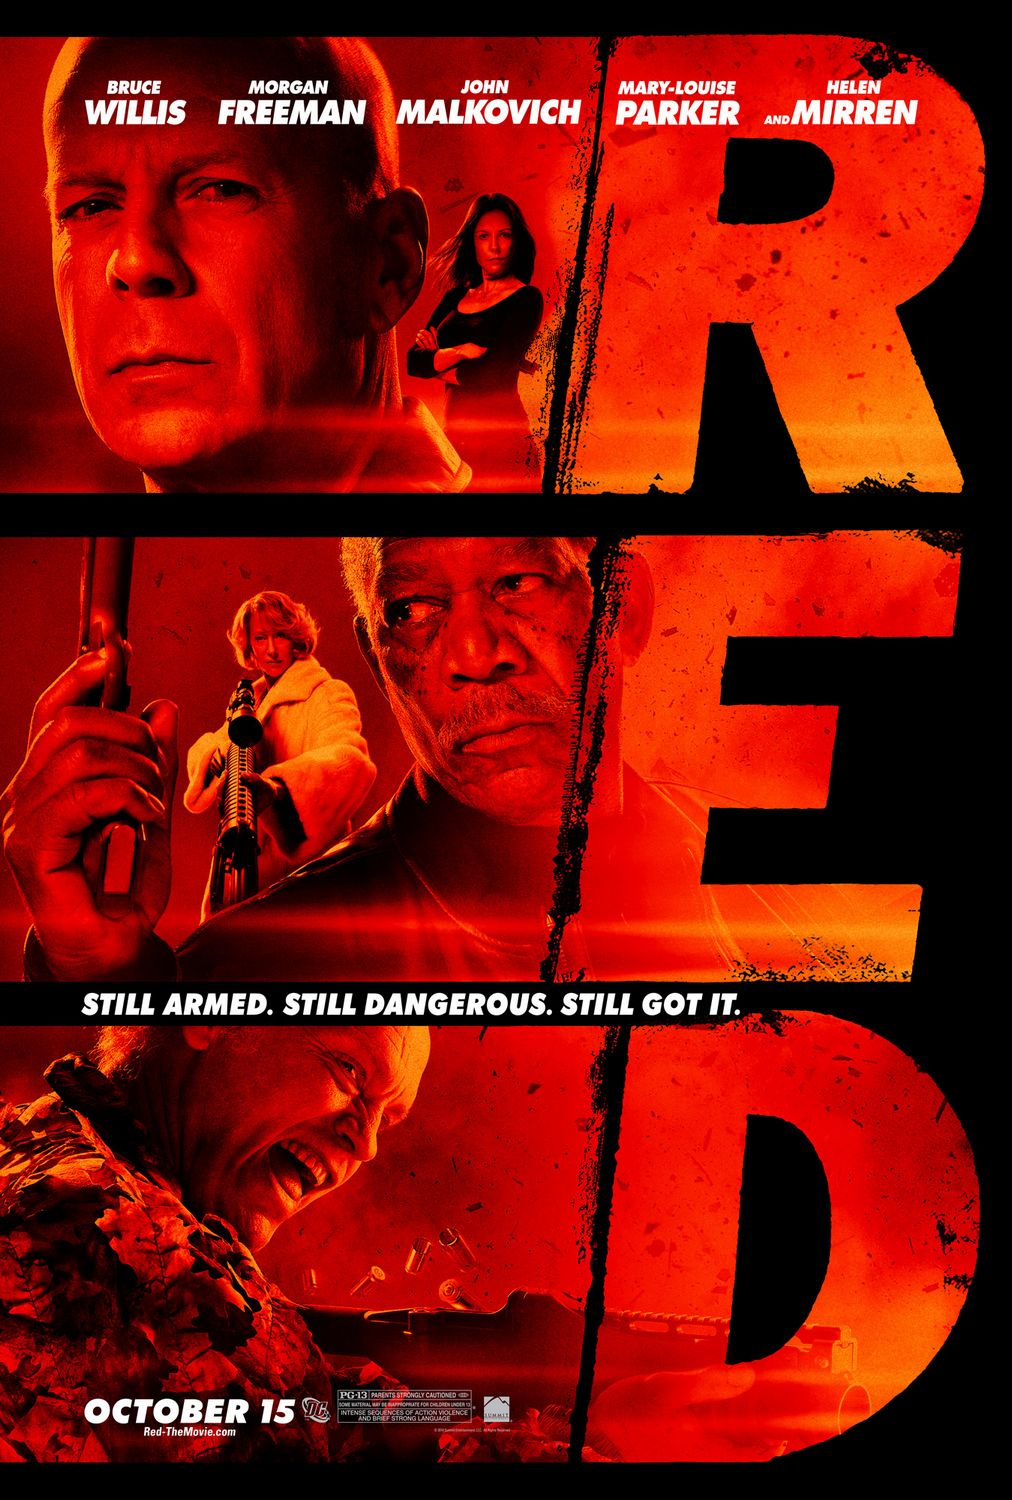 red movie poster final 01 You can comment with funny, naughty, sexy fantasy lines but please do not ...